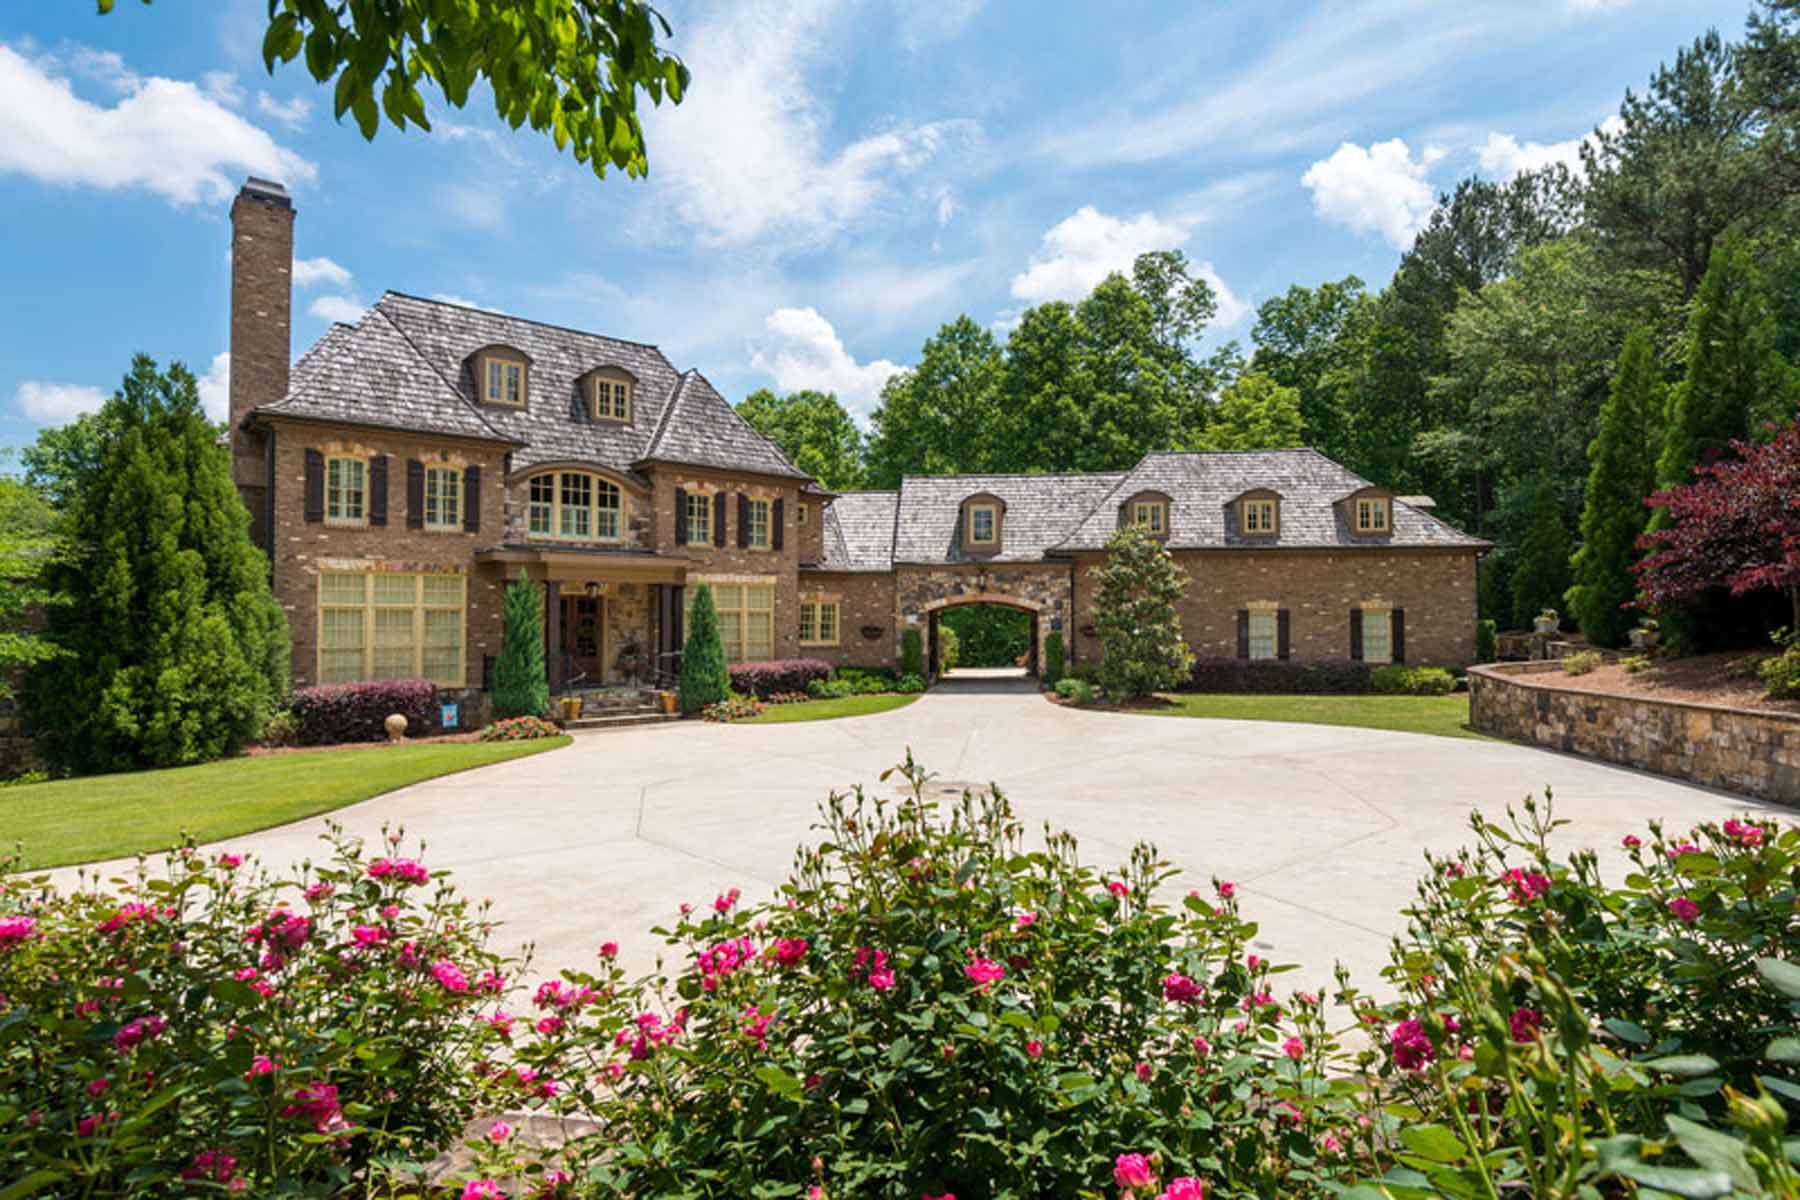 Maison unifamiliale pour l Vente à Luxurious Private Estate 200 Woodhaven Lane Ball Ground, Georgia 30107 États-Unis